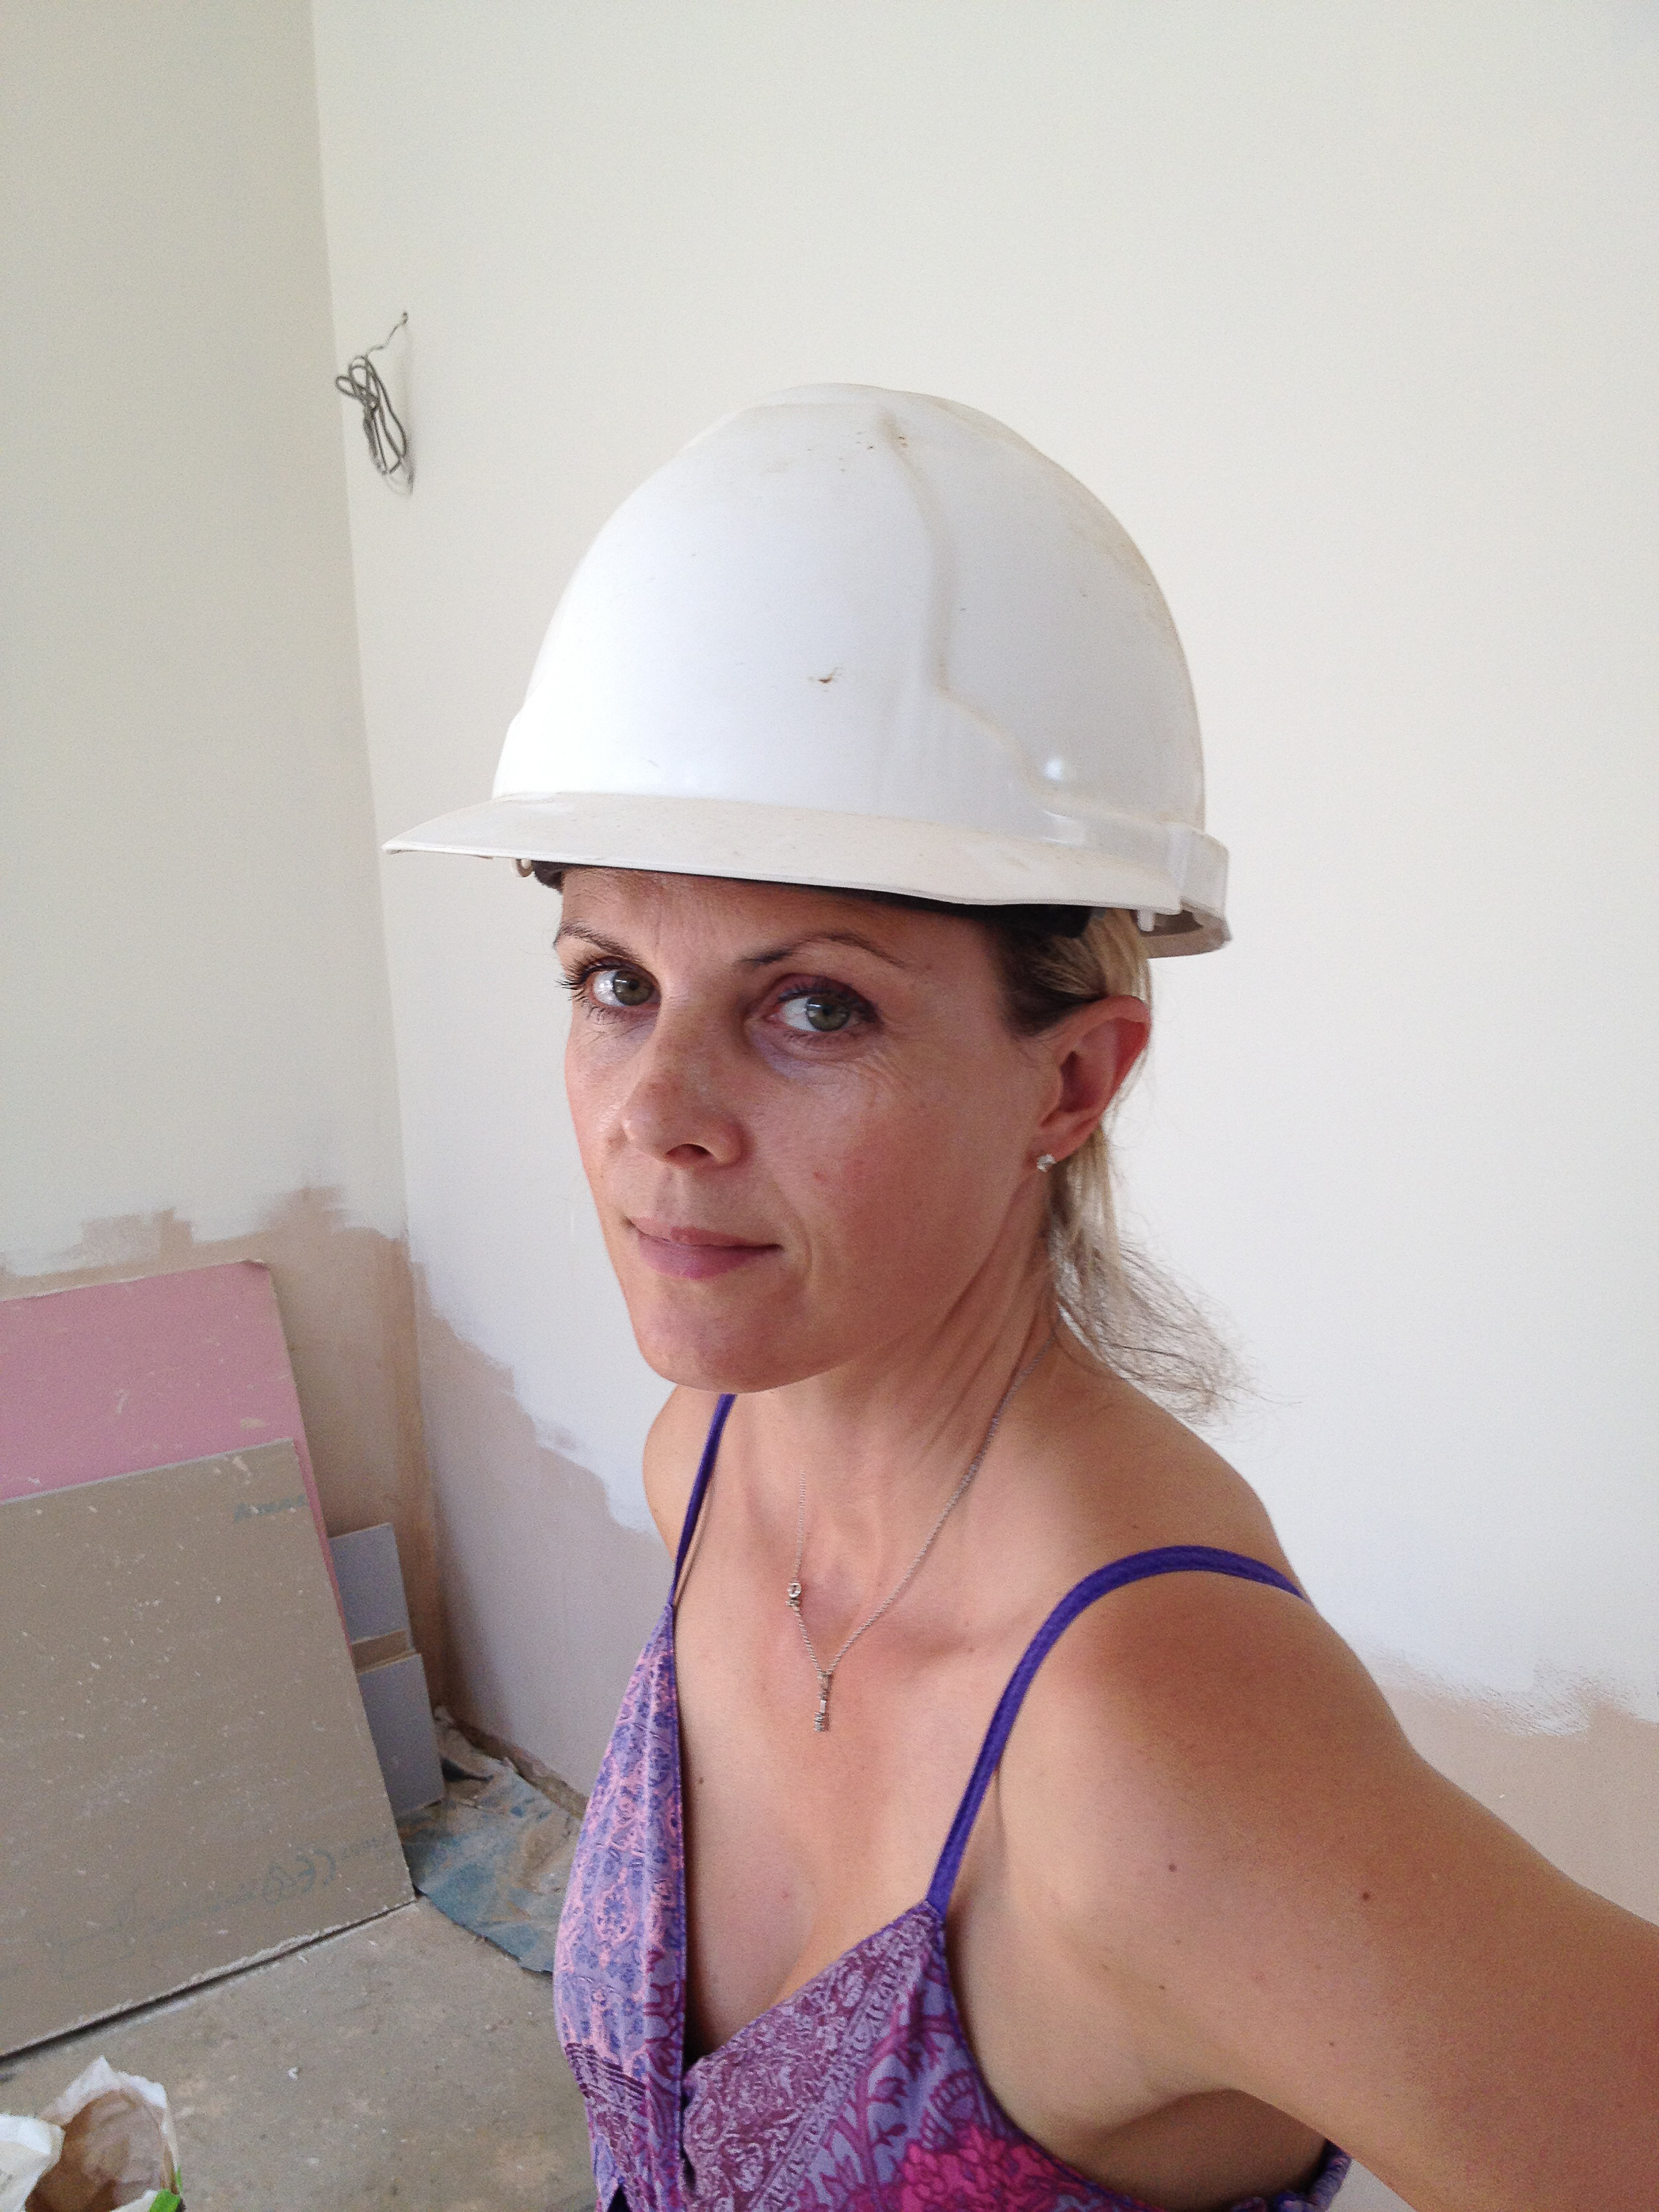 Channelling Hard hat Chic…